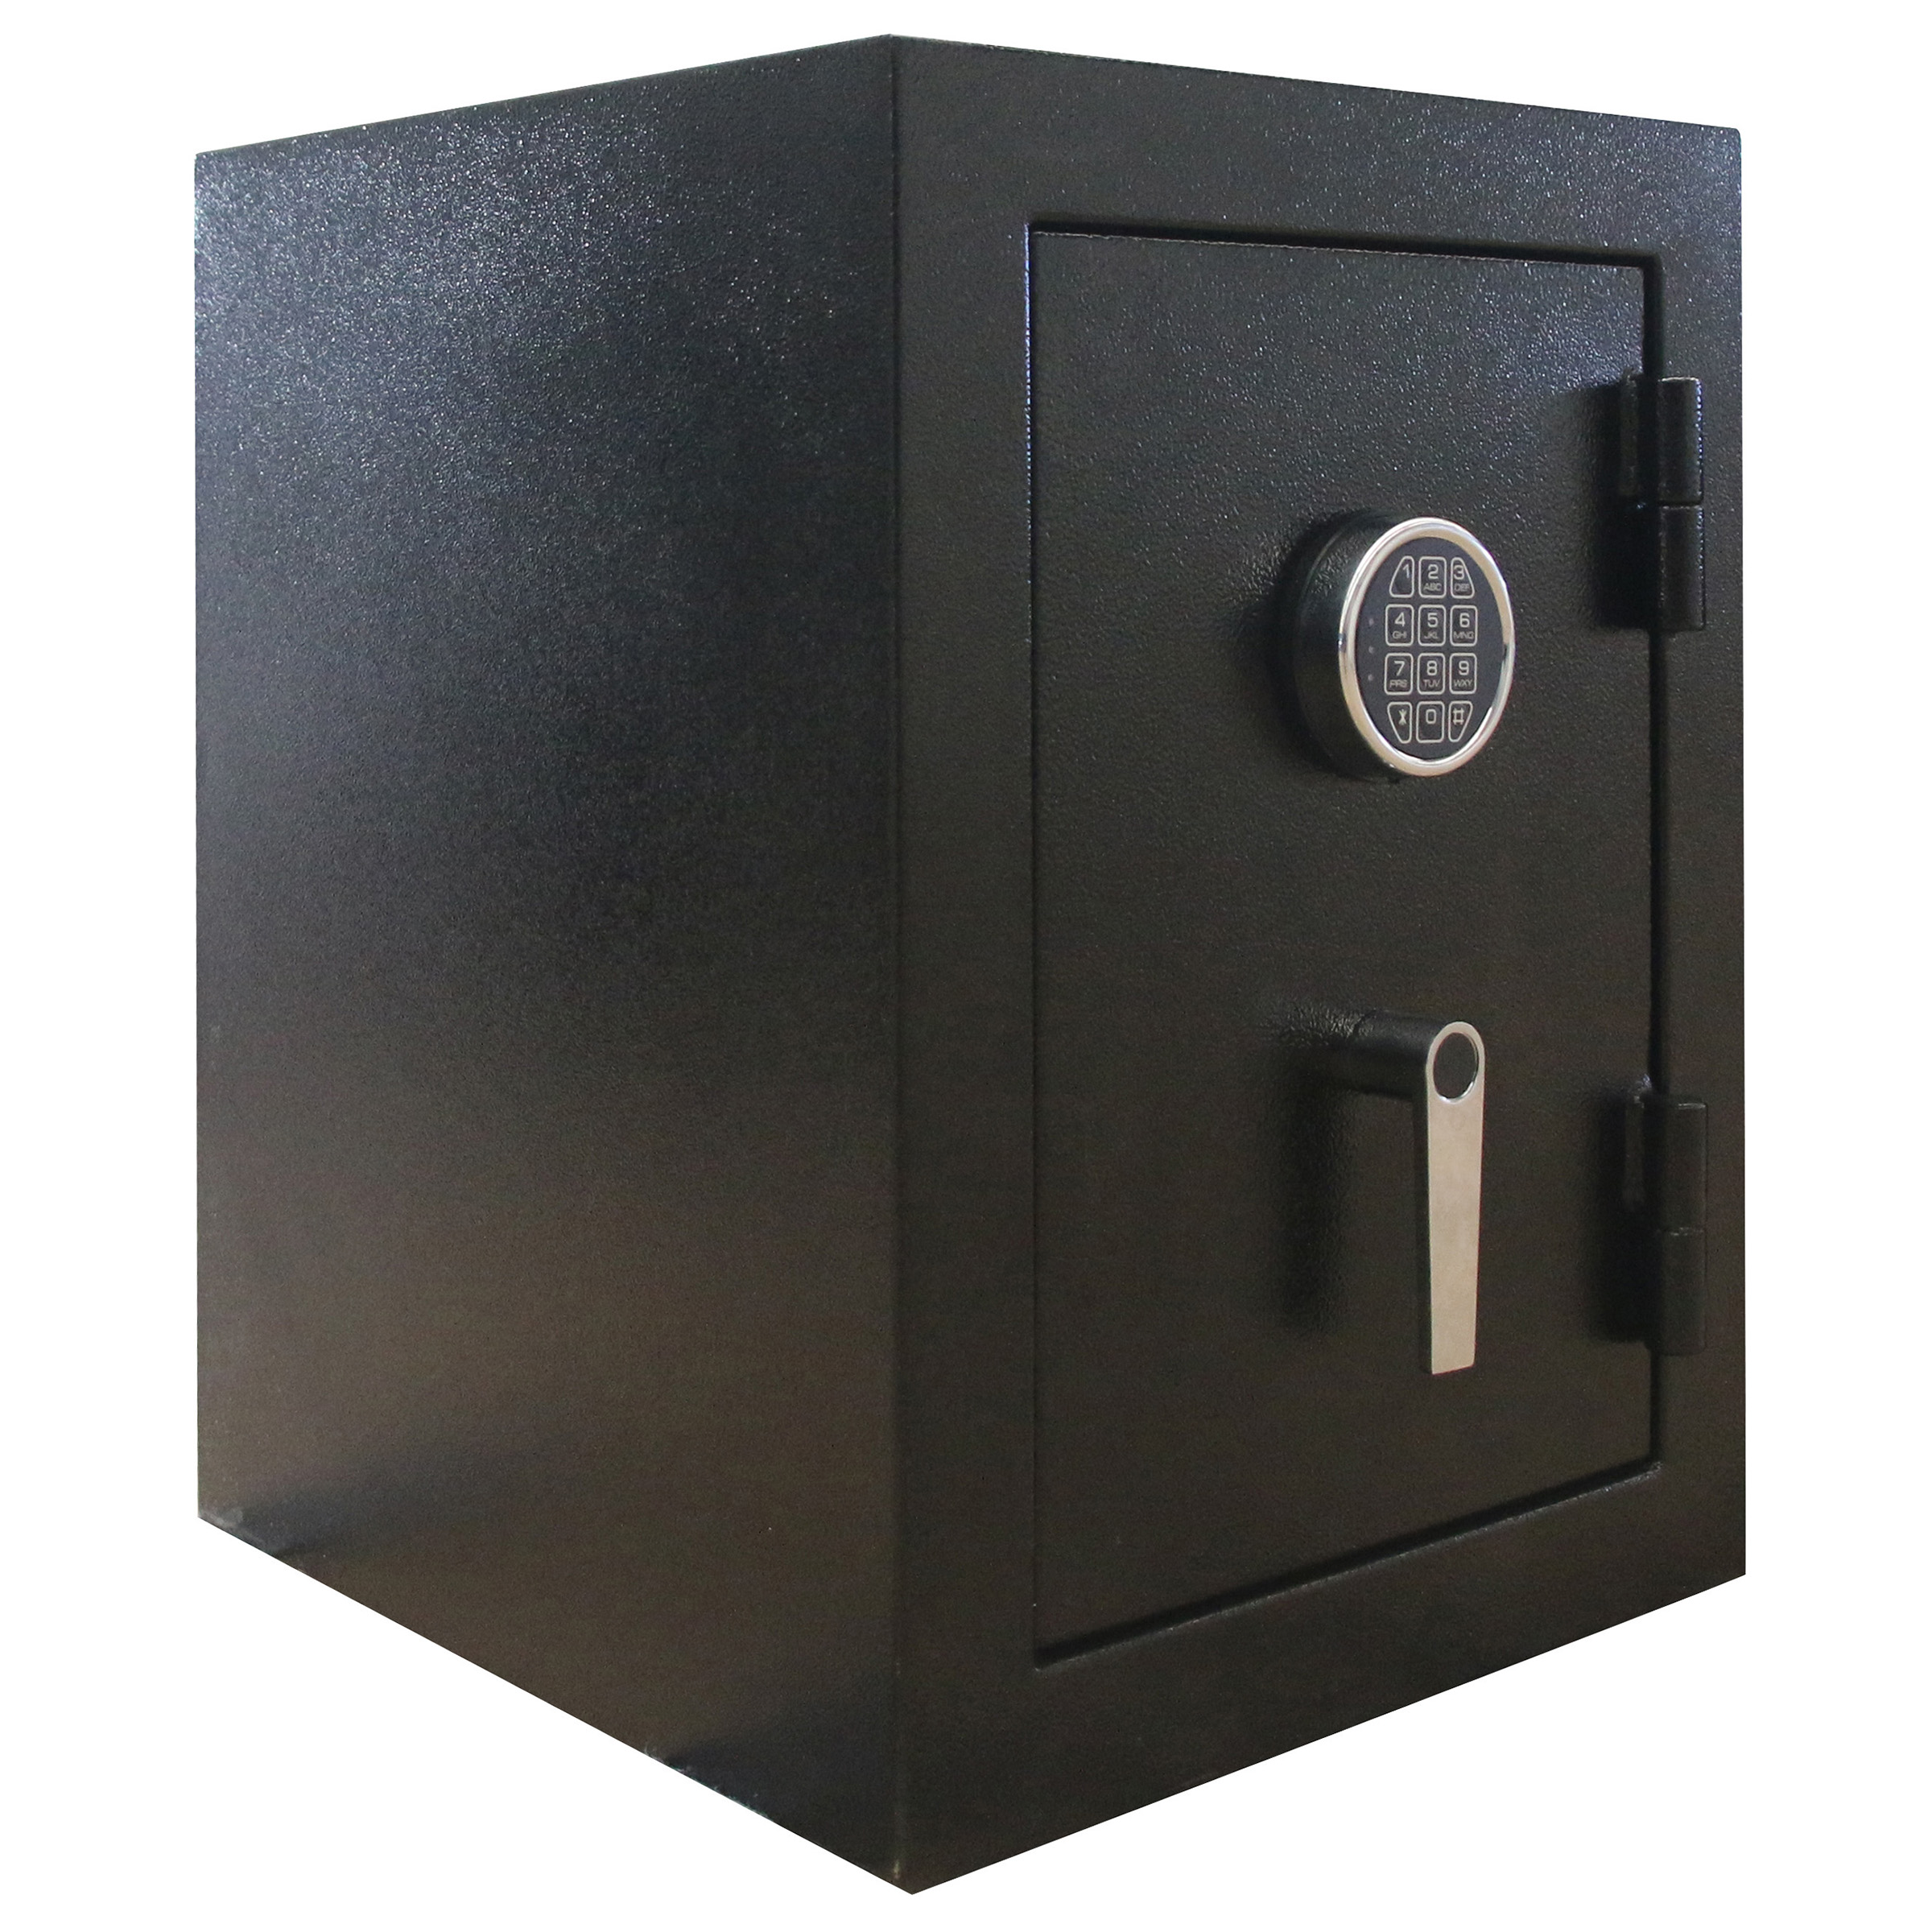 Jewelry Safe with Electronic Lock - Black